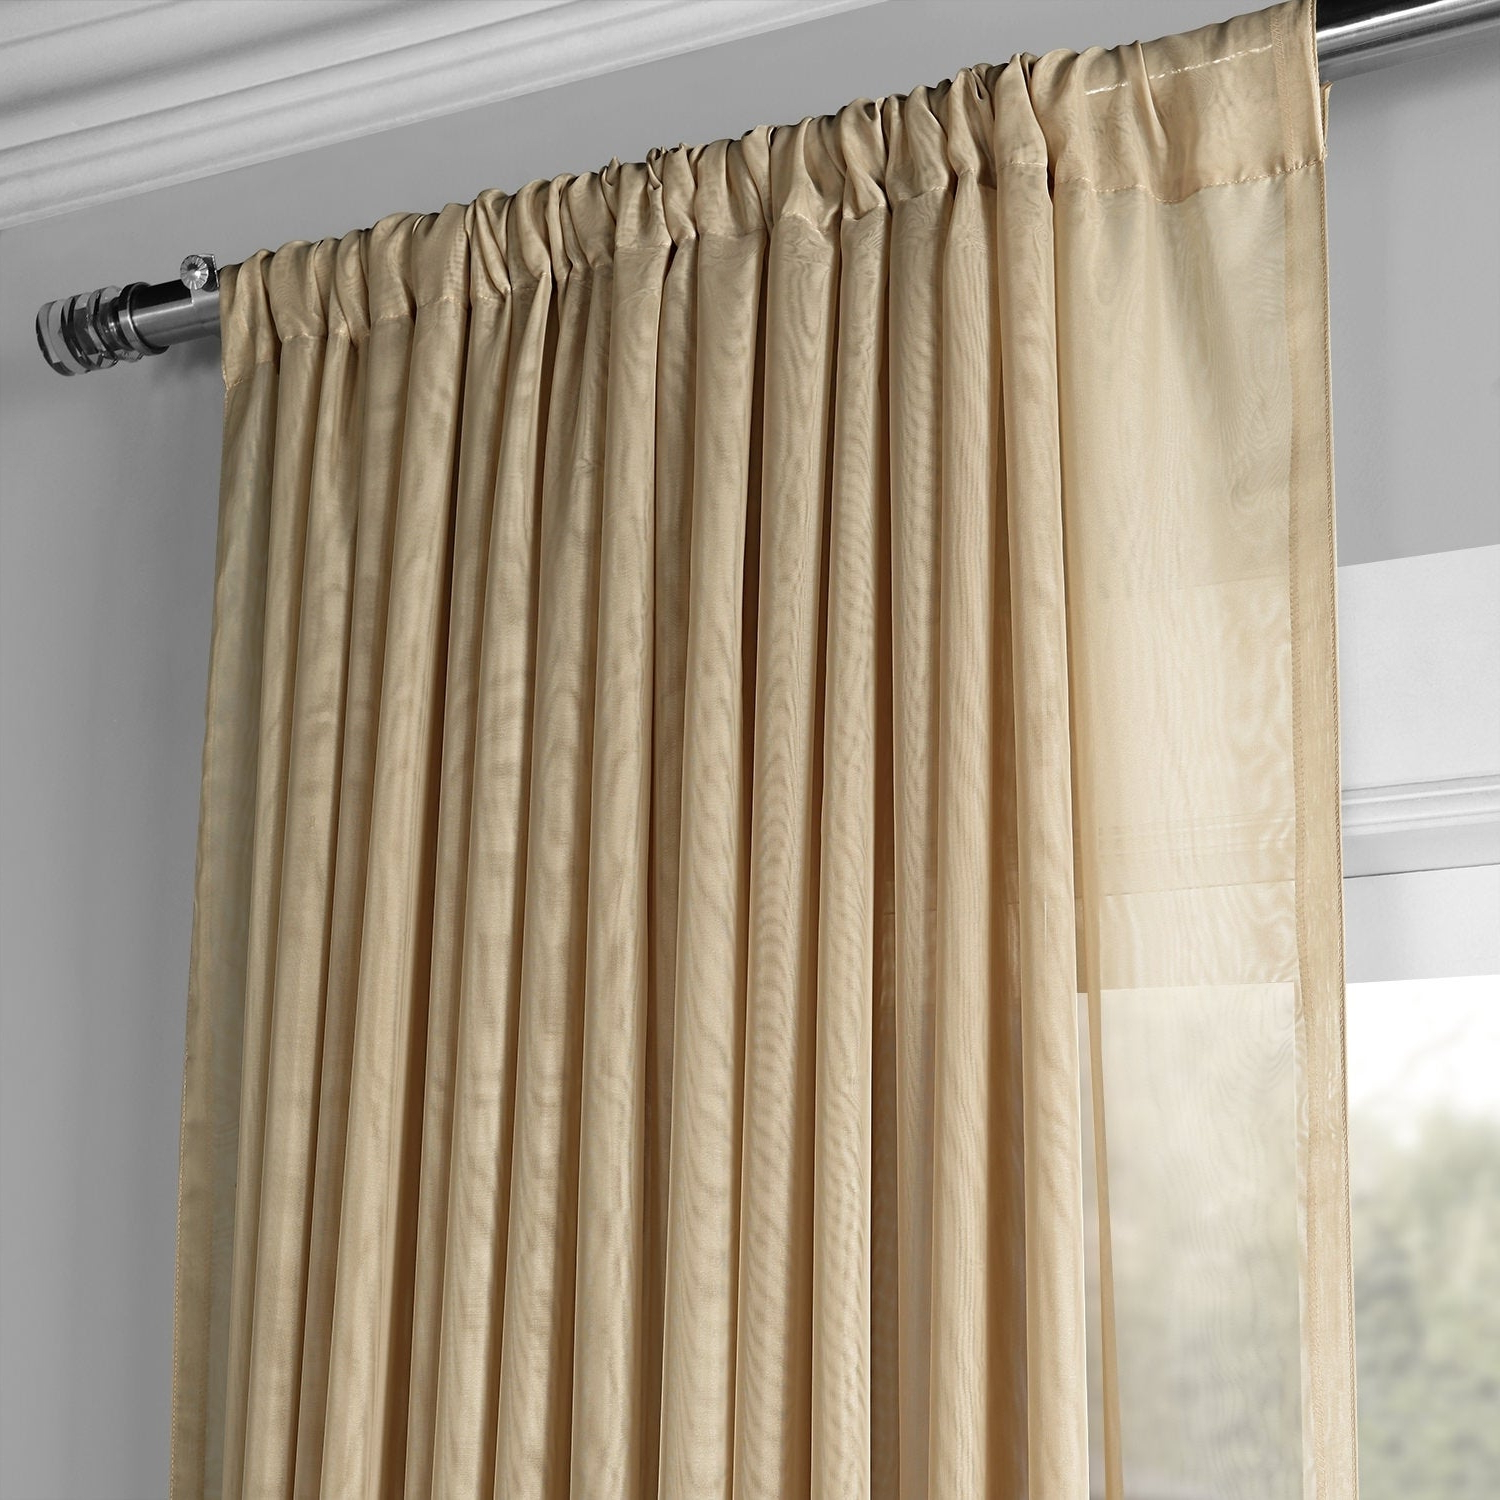 Trendy Signature Extrawide Double Layer Sheer Curtain Panels With Regard To Exclusive Fabrics Signature Extrawide Double Layer Sheer Curtain Panel (View 6 of 20)